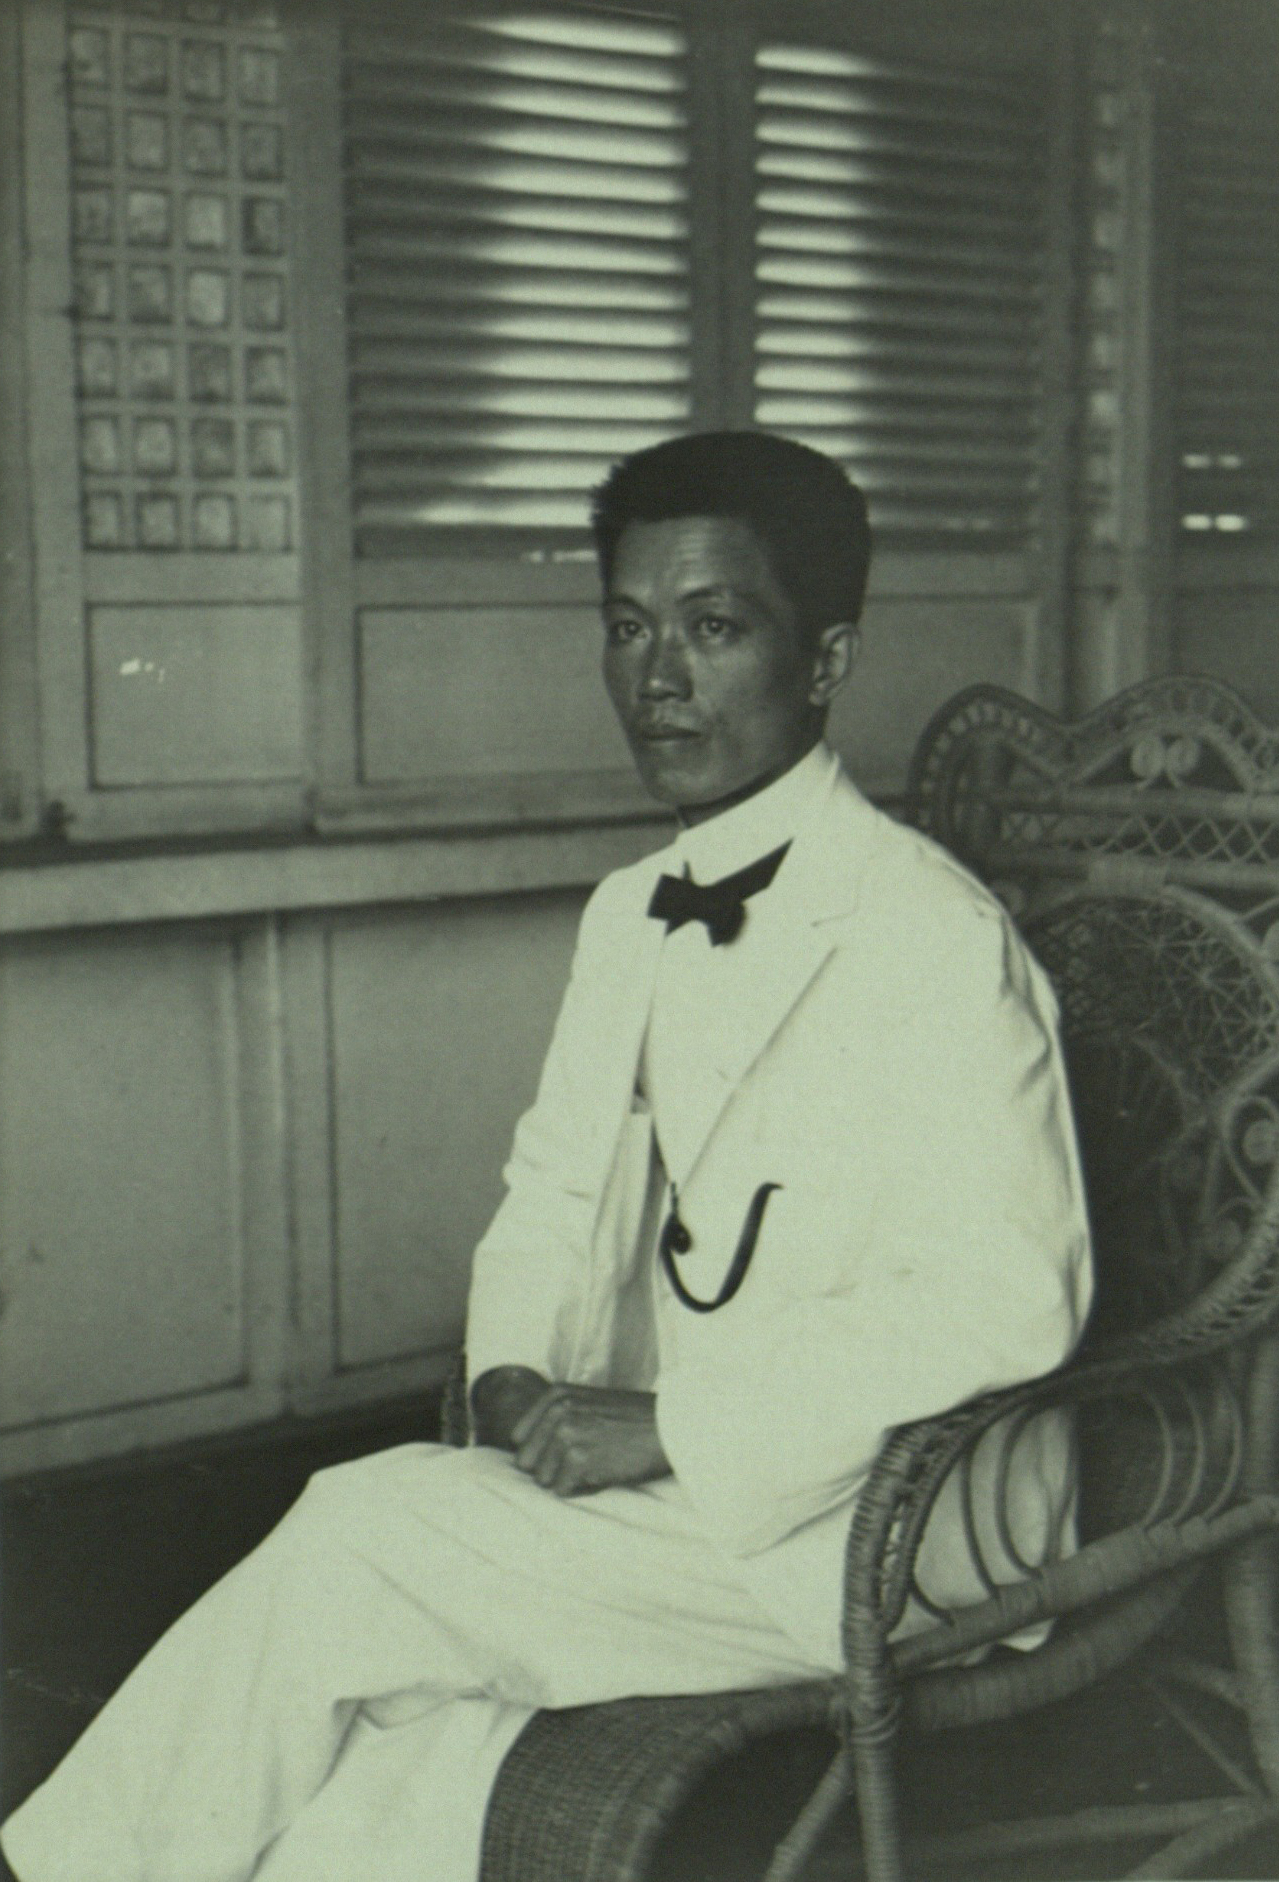 emilio aguinaldo and rizal Emilio aguinaldo (1869–1964) was a filipino general who played an important role in the philippine revolution against spain, and later led filipino insurgent soldiers against american forces in 1898, the united states supported filipino general emilio aguinaldo in his efforts against the spanish.